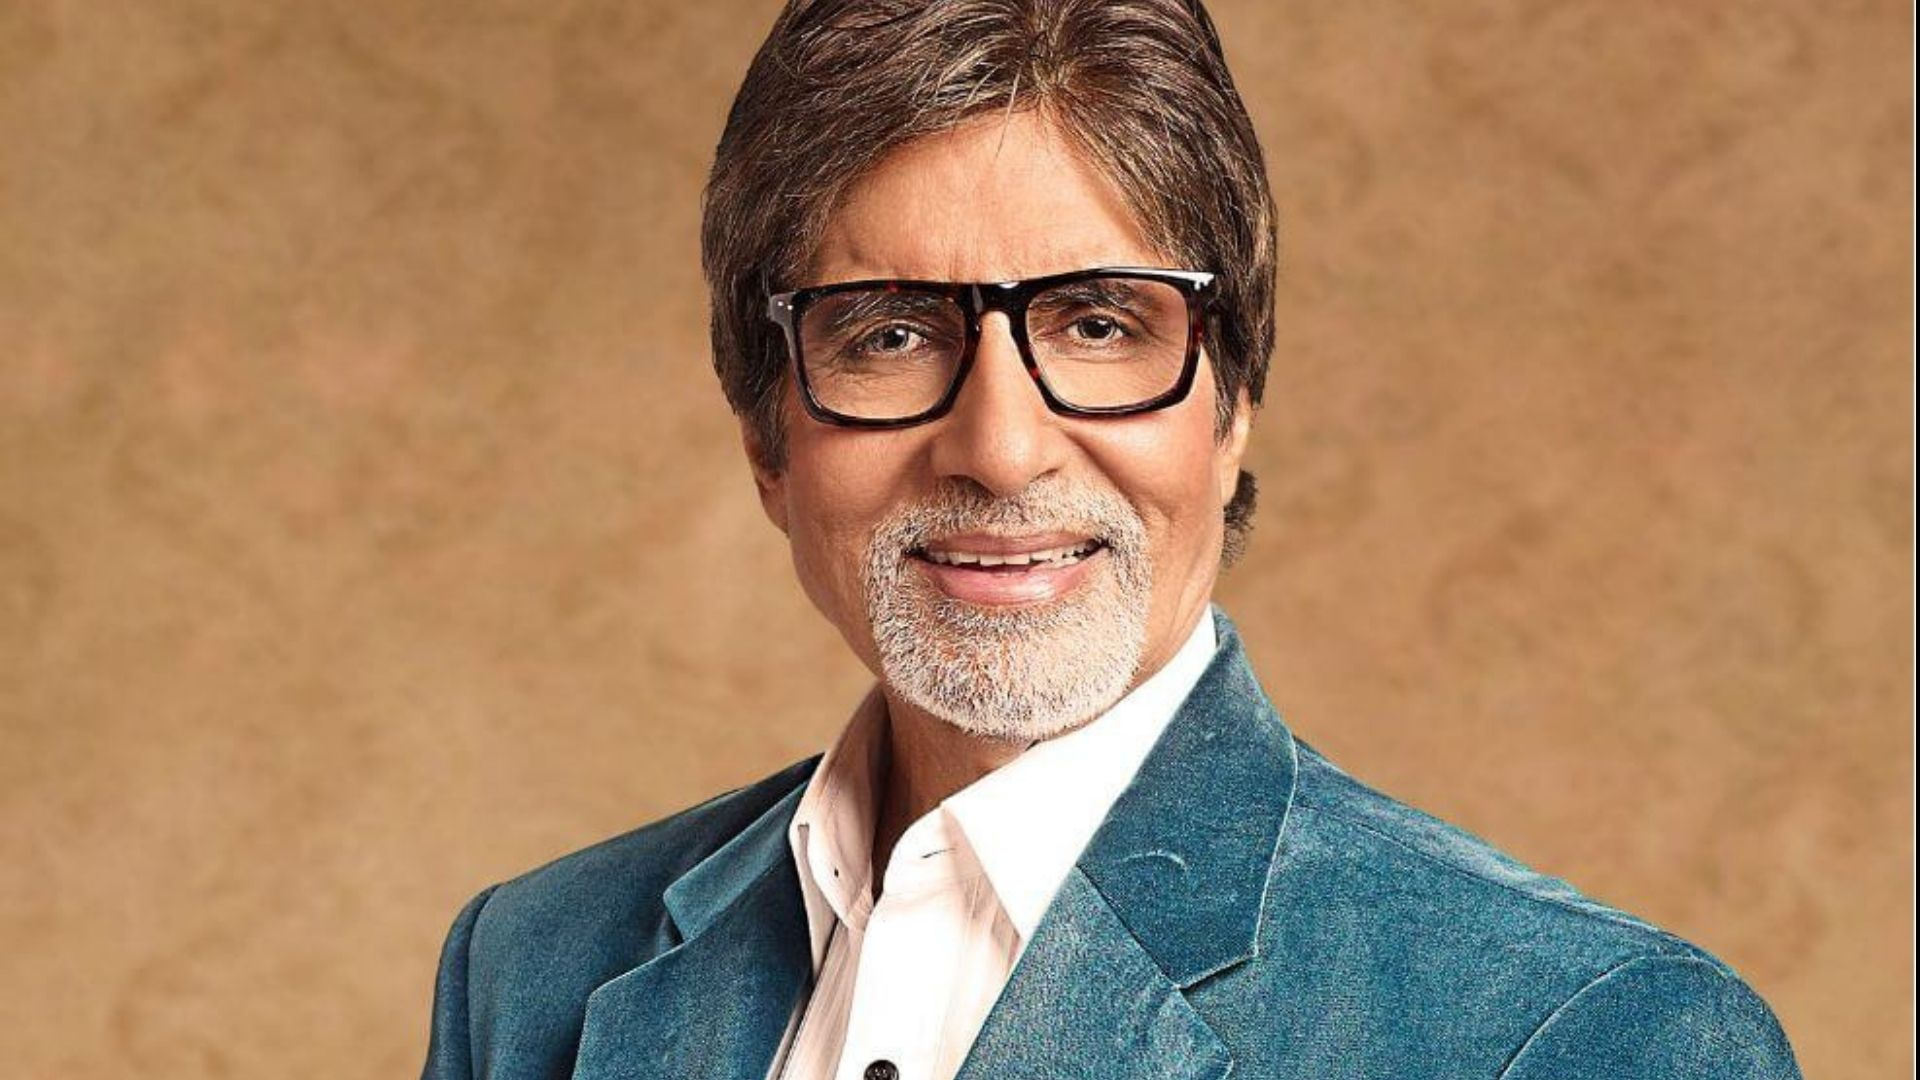 Amitabh Bachchan Expresses Heartfelt Gratitude To All His Well-Wishers For Making His Birthday Memorable